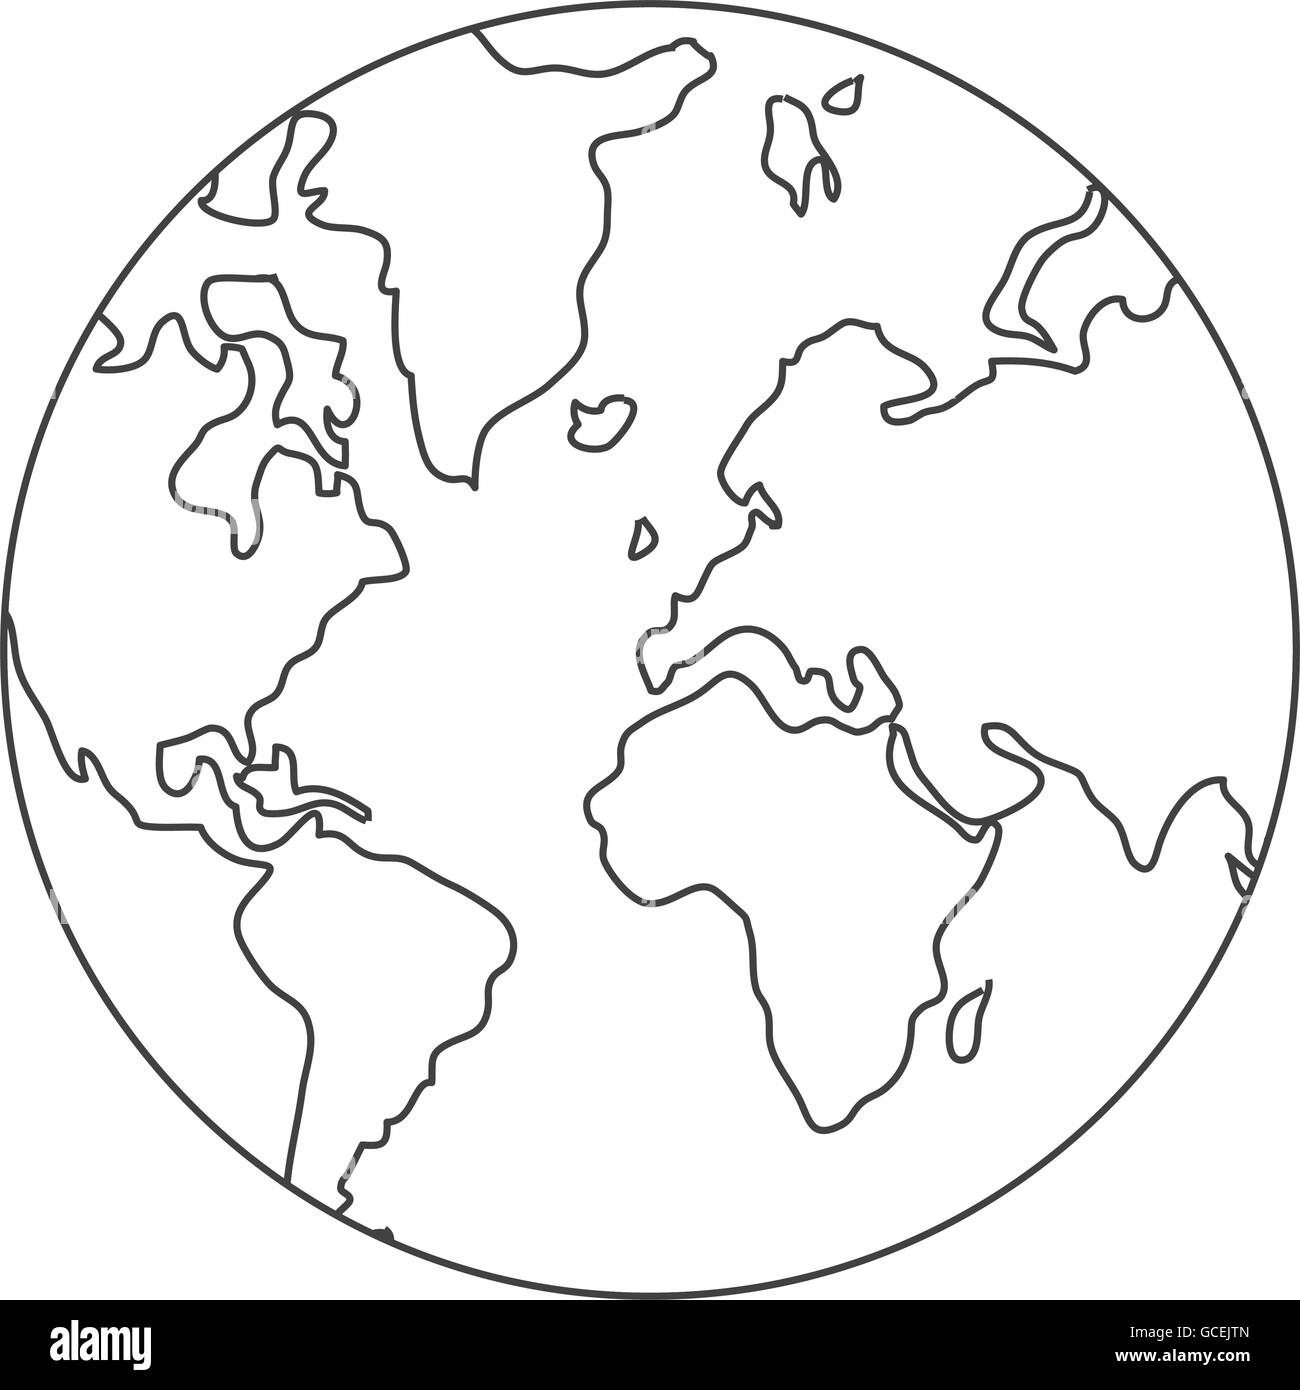 World map globe earth icon stock vector art illustration vector world map globe earth icon gumiabroncs Gallery